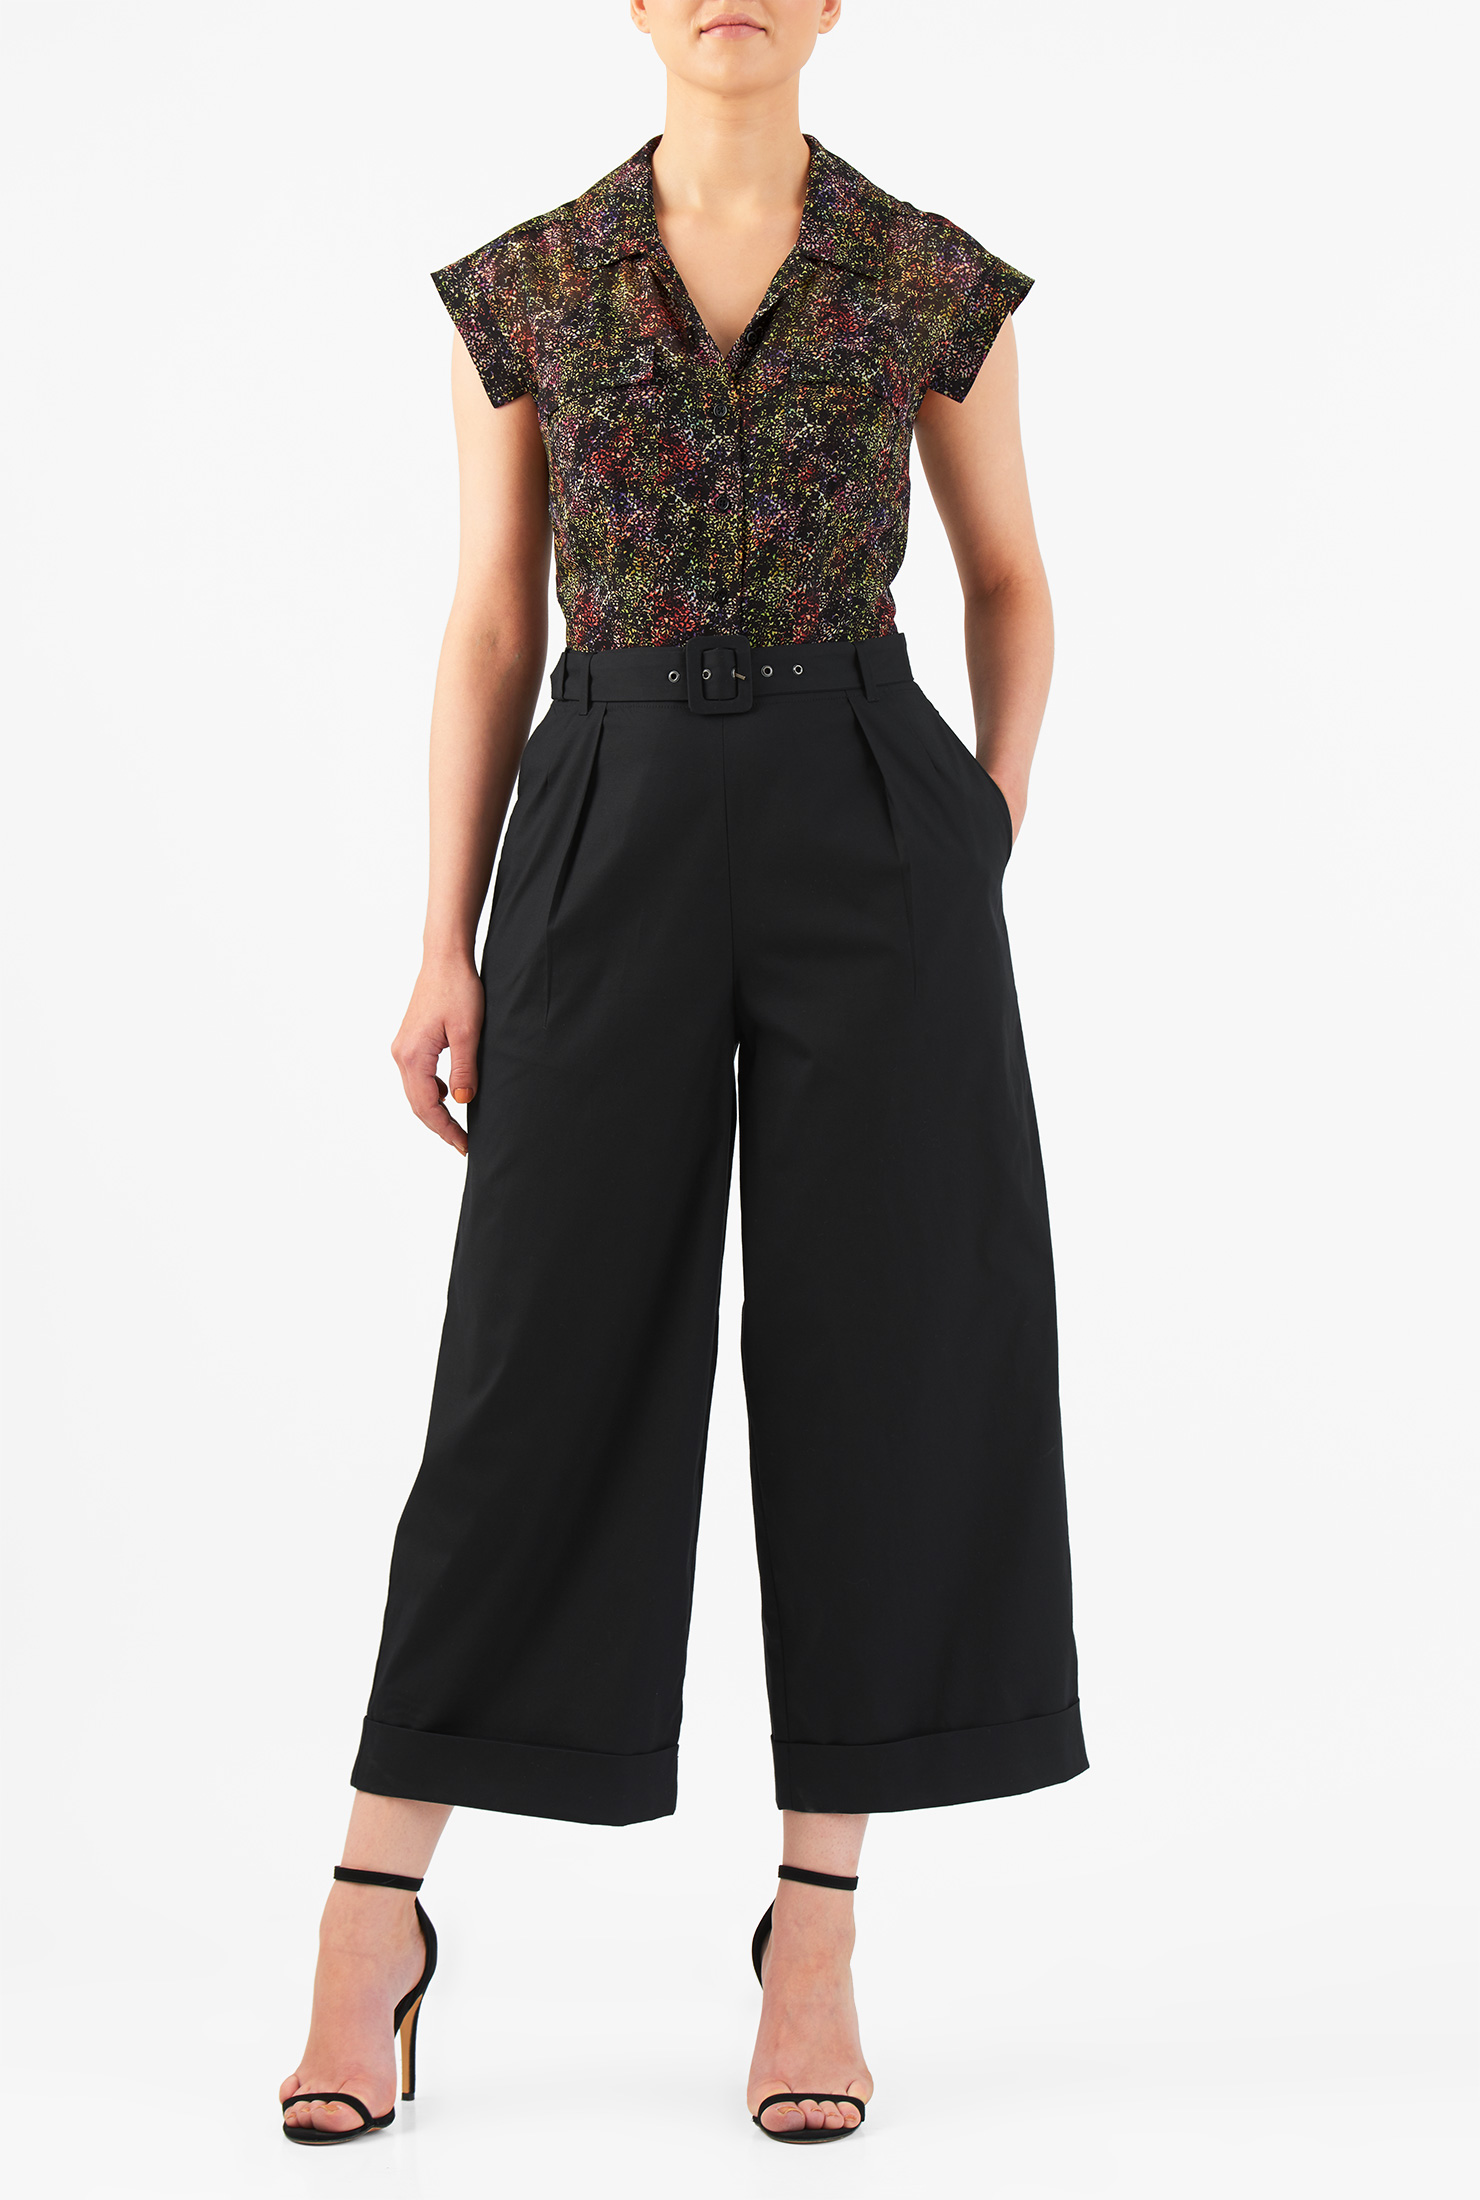 Image of eShakti Women's Abstract print mixed media belted jumpsuit